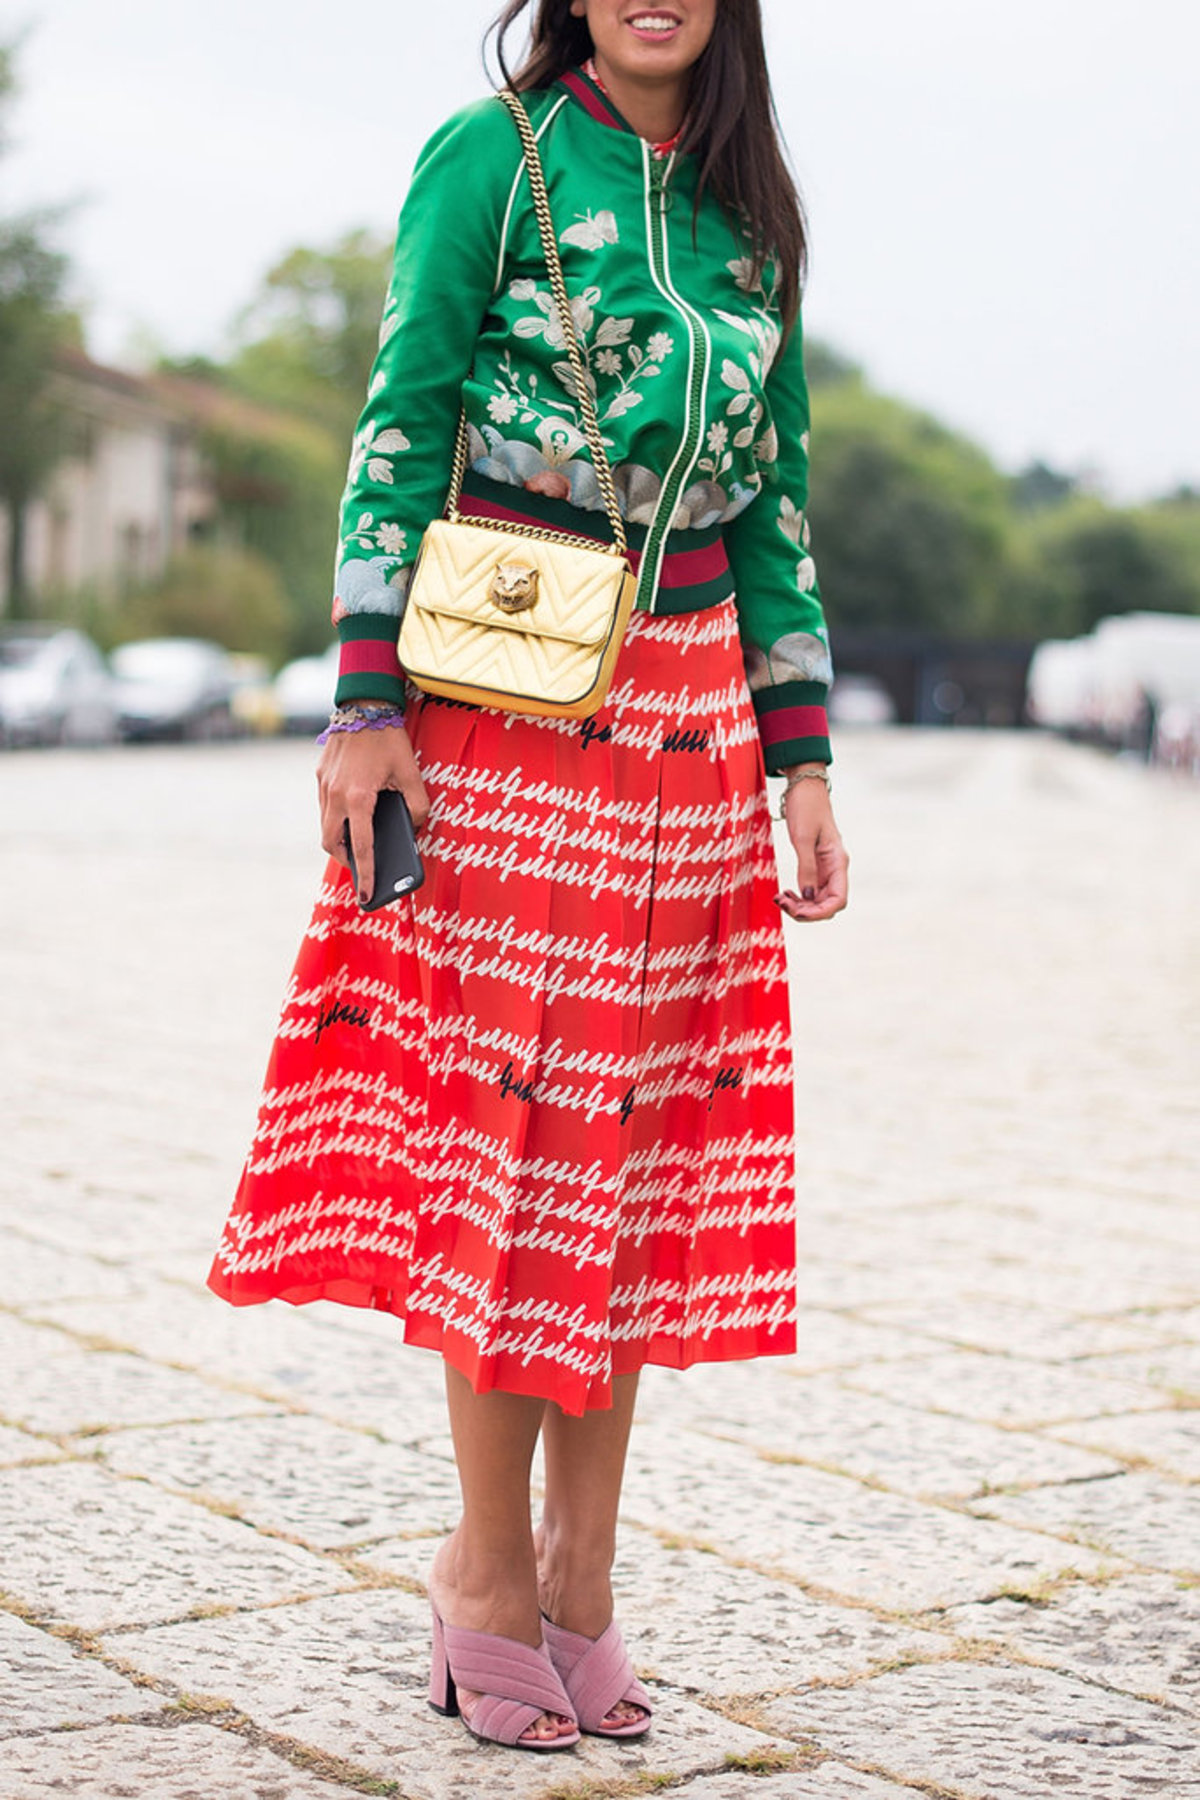 120816-red-green-street-style-7